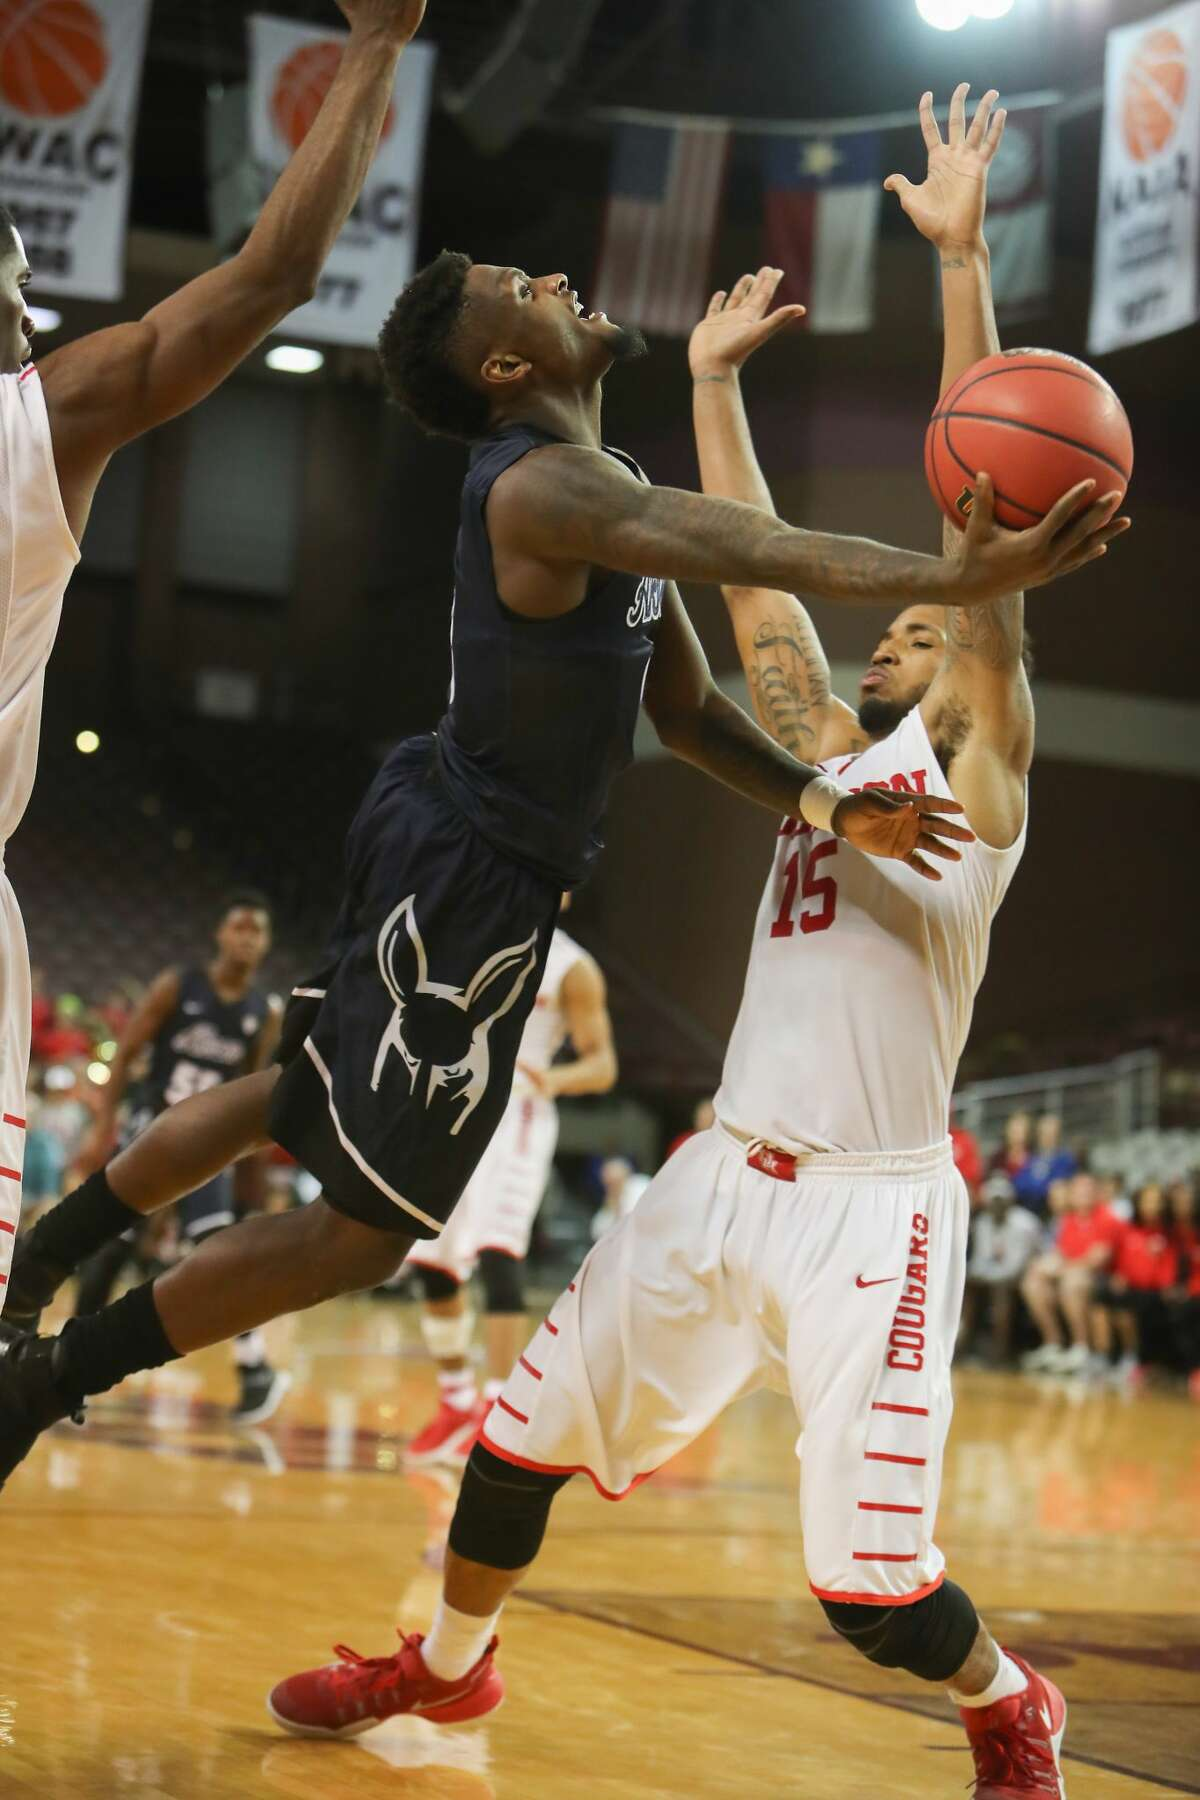 Akron Zips guard Jimond Ivey (0) shoots around Houston Cougars forward Devin Davis (15) during second half action between Houston vs. Akron in NIT basketball tournament at TSU H&PE Arena Wednesday, March 15, 2017, in Houston. ( Steve Gonzales / Houston Chronicle )